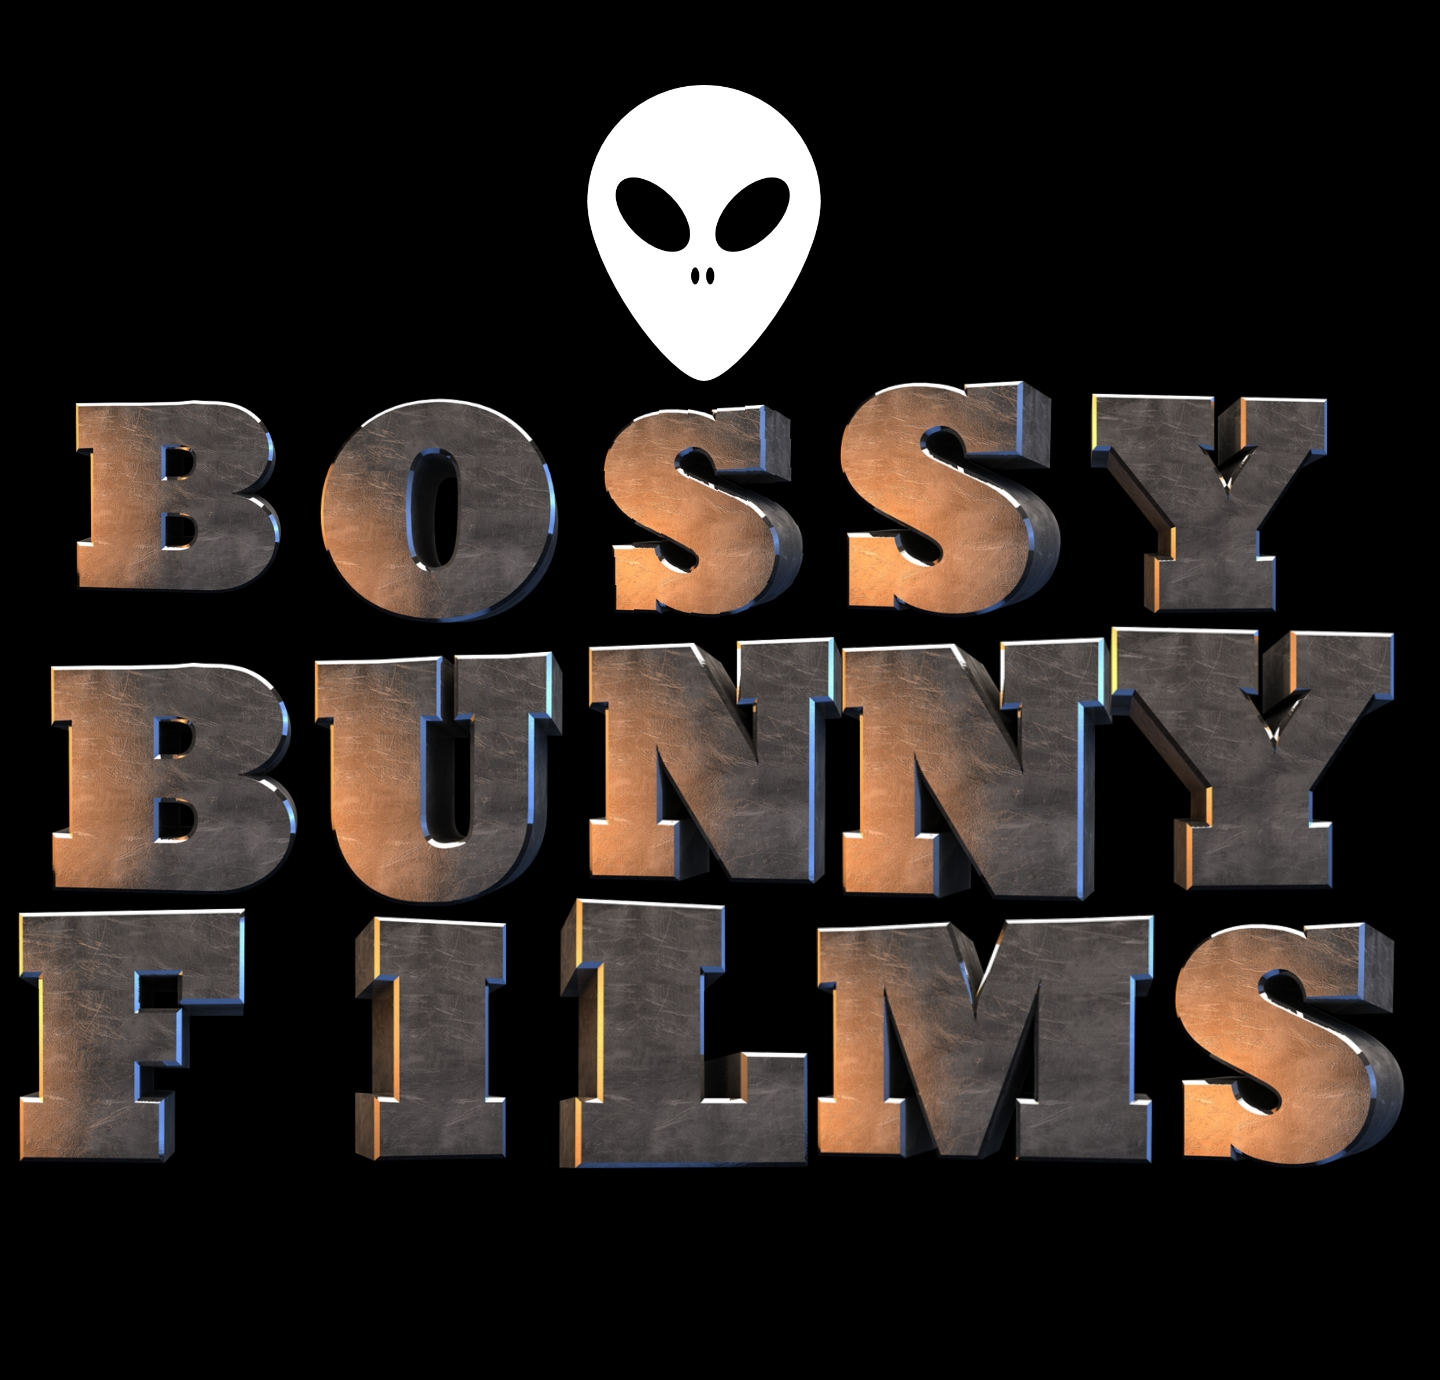 Bossy Bunny Pictures